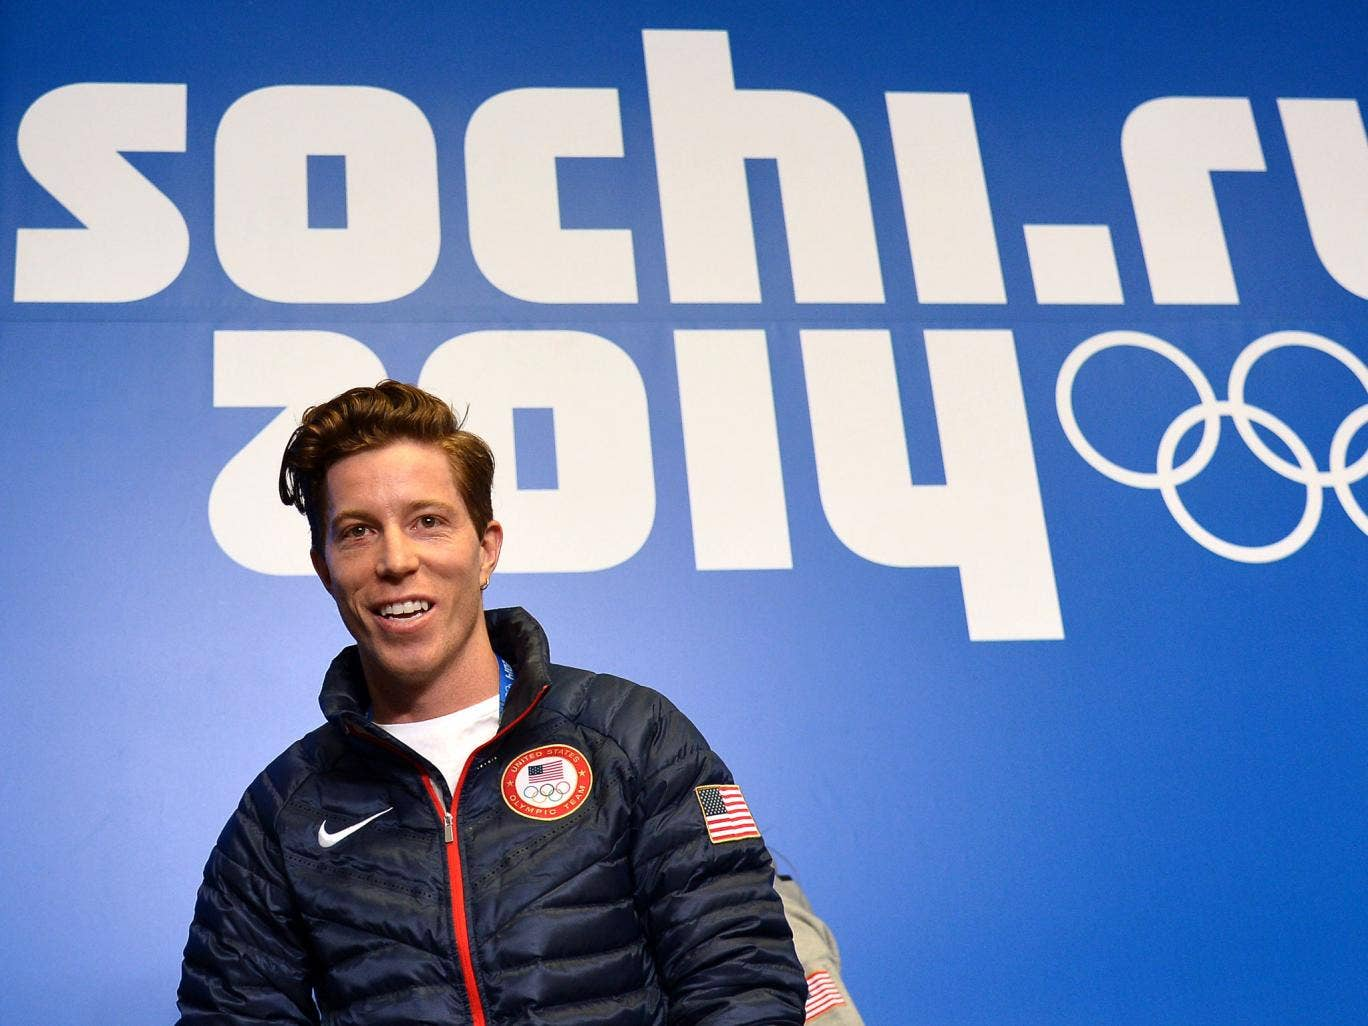 Shaun White pictured at the Sochi games